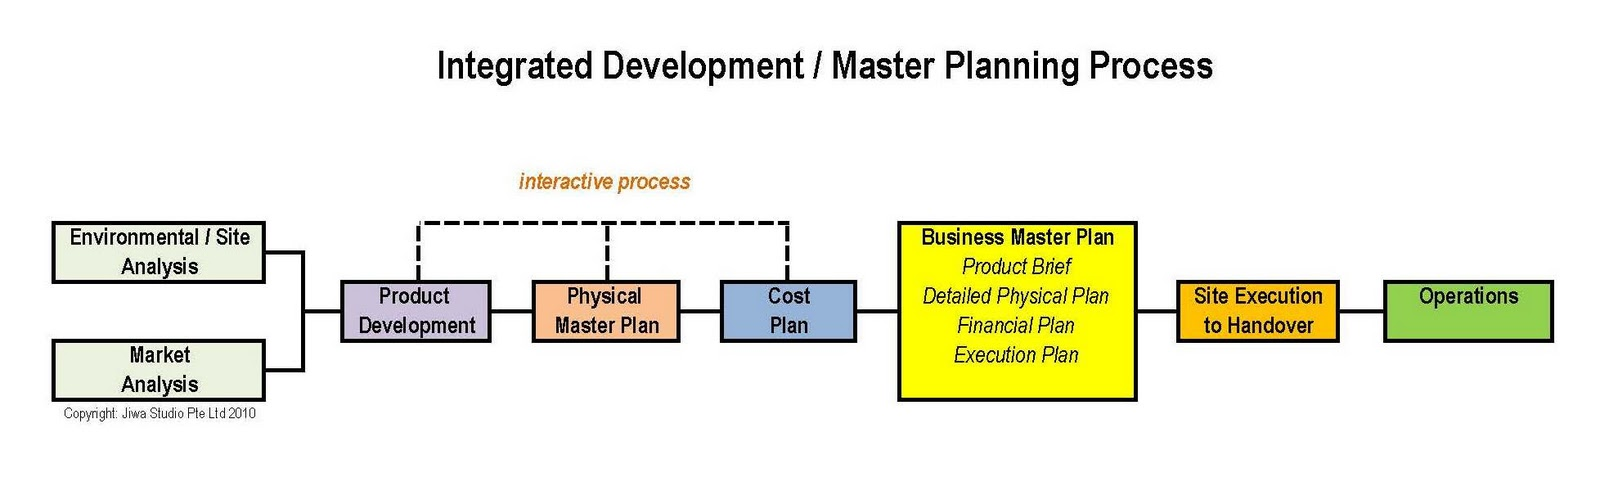 Jiwa Development Planning Architecture 17 2 Integrated Master Planning For Destination